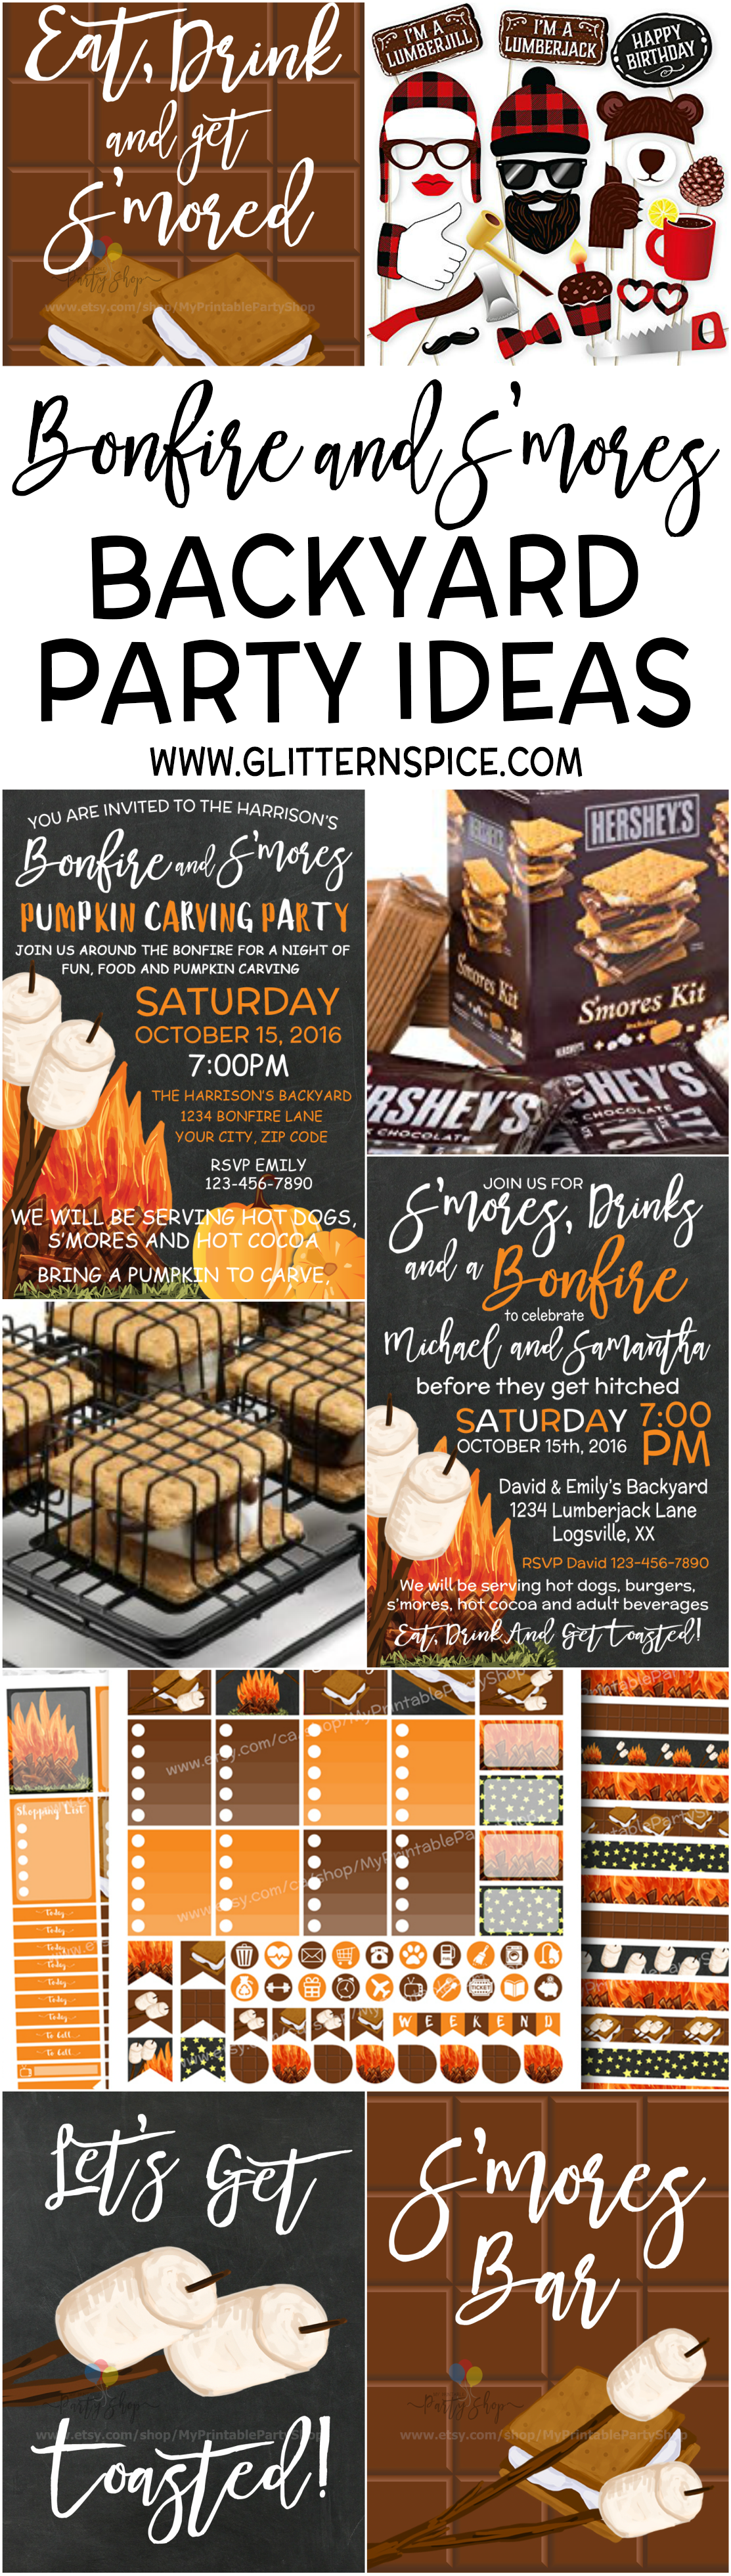 S'mores And Bonfire Backyard Party Ideas